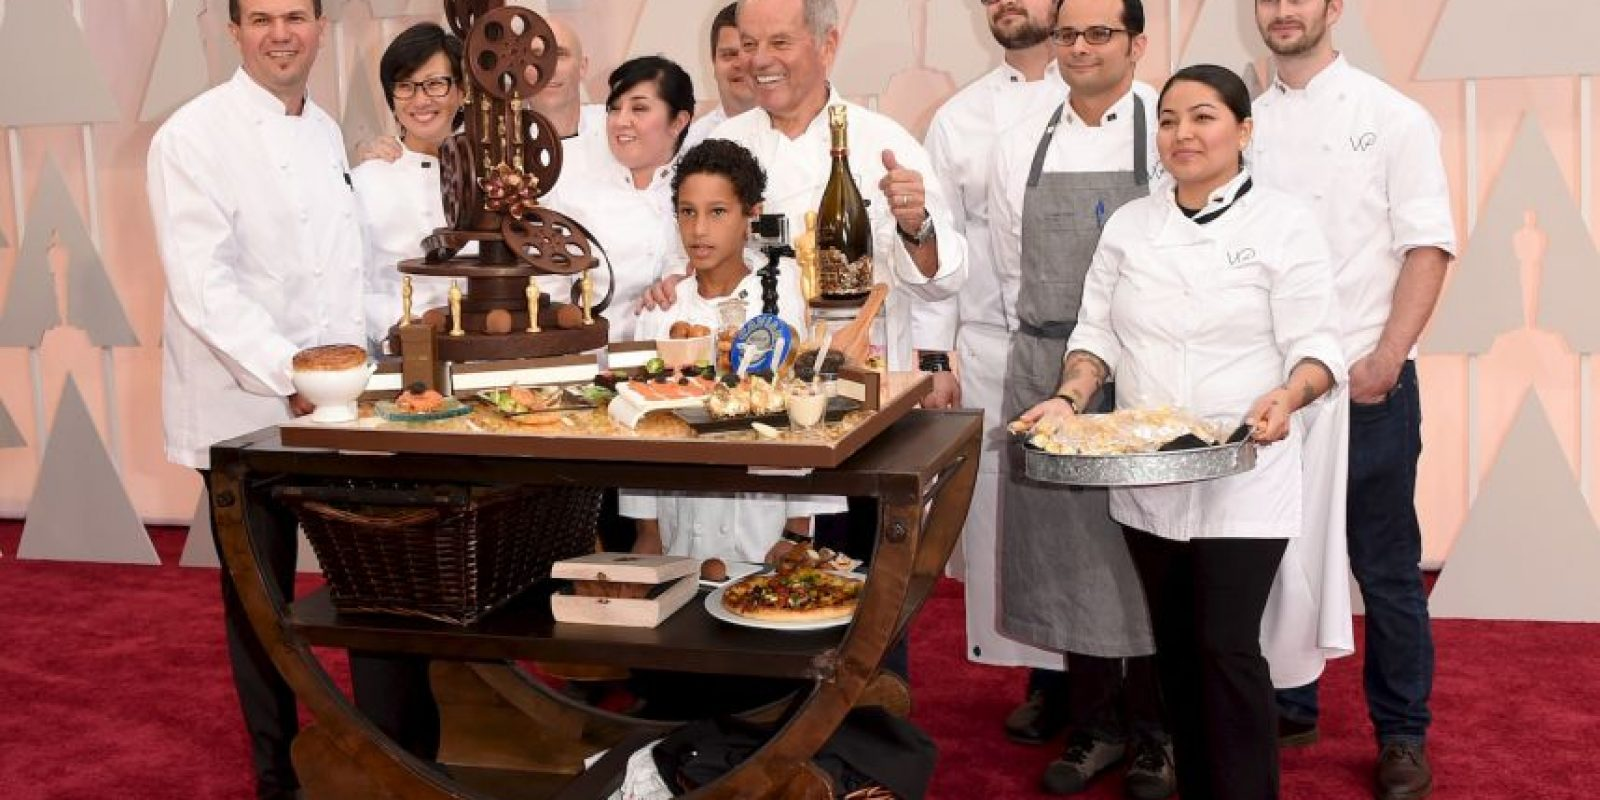 Chef Wolfgang Puck Foto:Getty Images